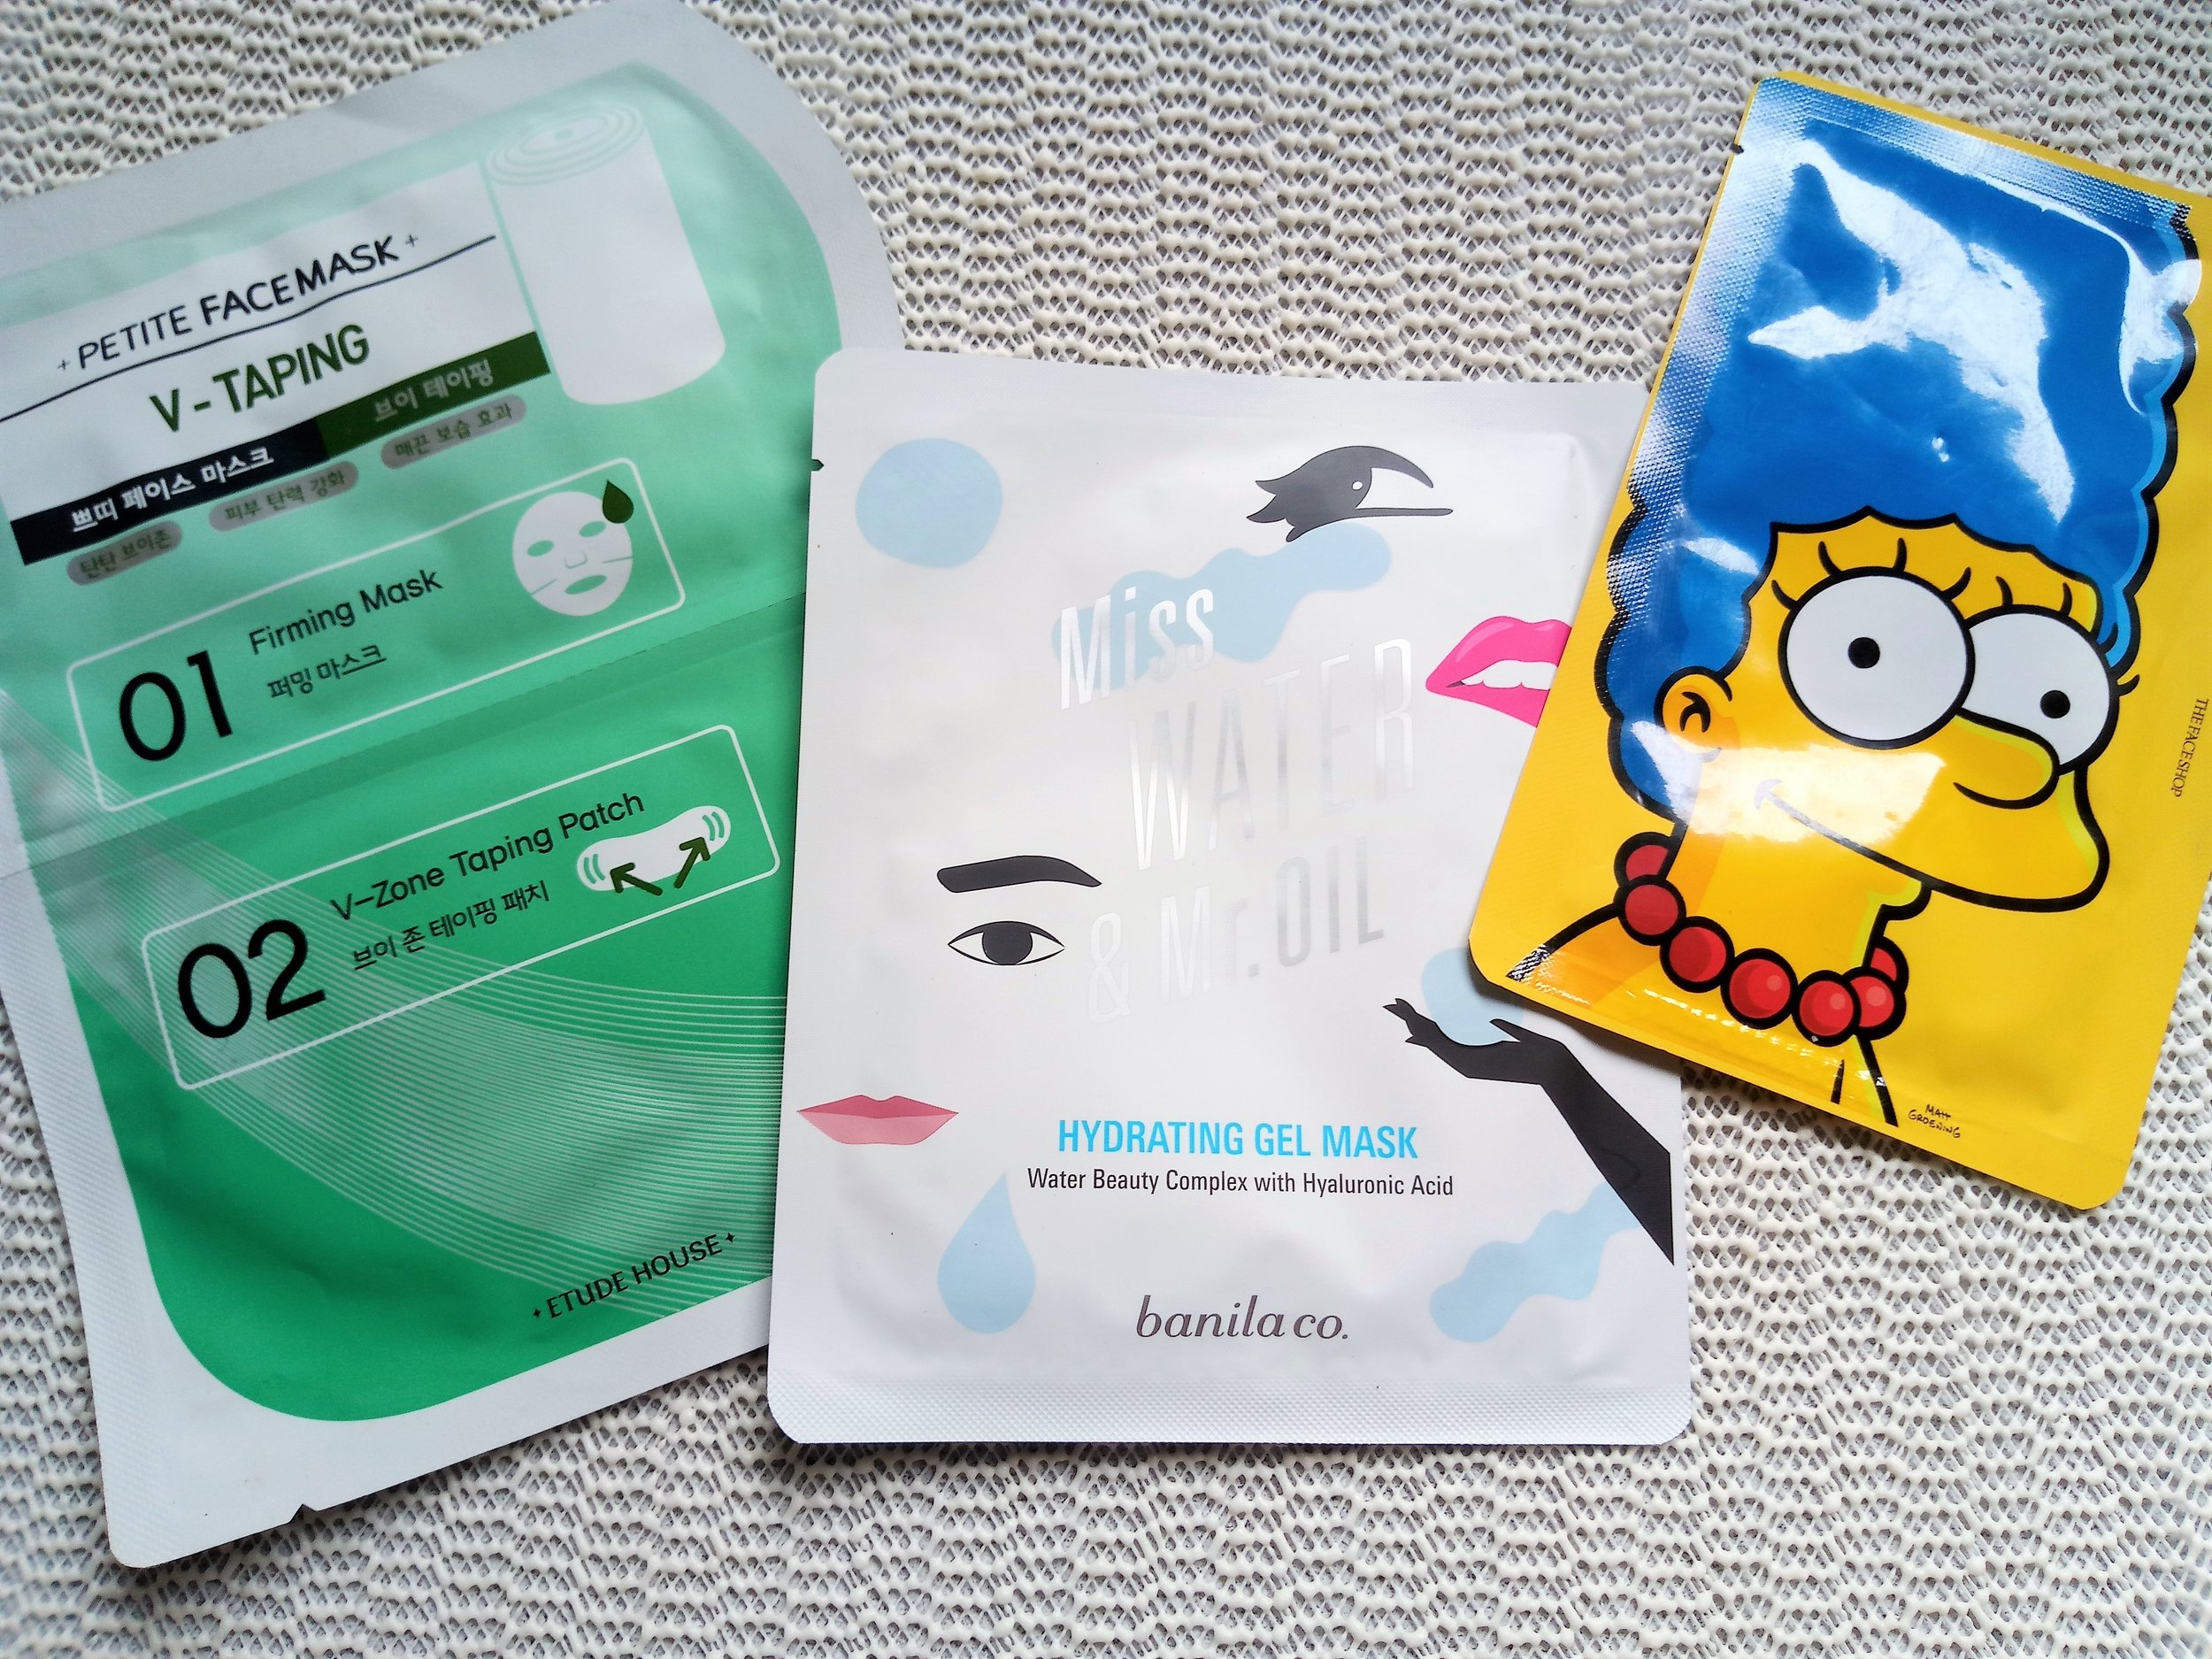 Etude House V-Taping, Banila Co. Miss Water & Mr. Oil, The Face Shop Marge character masks